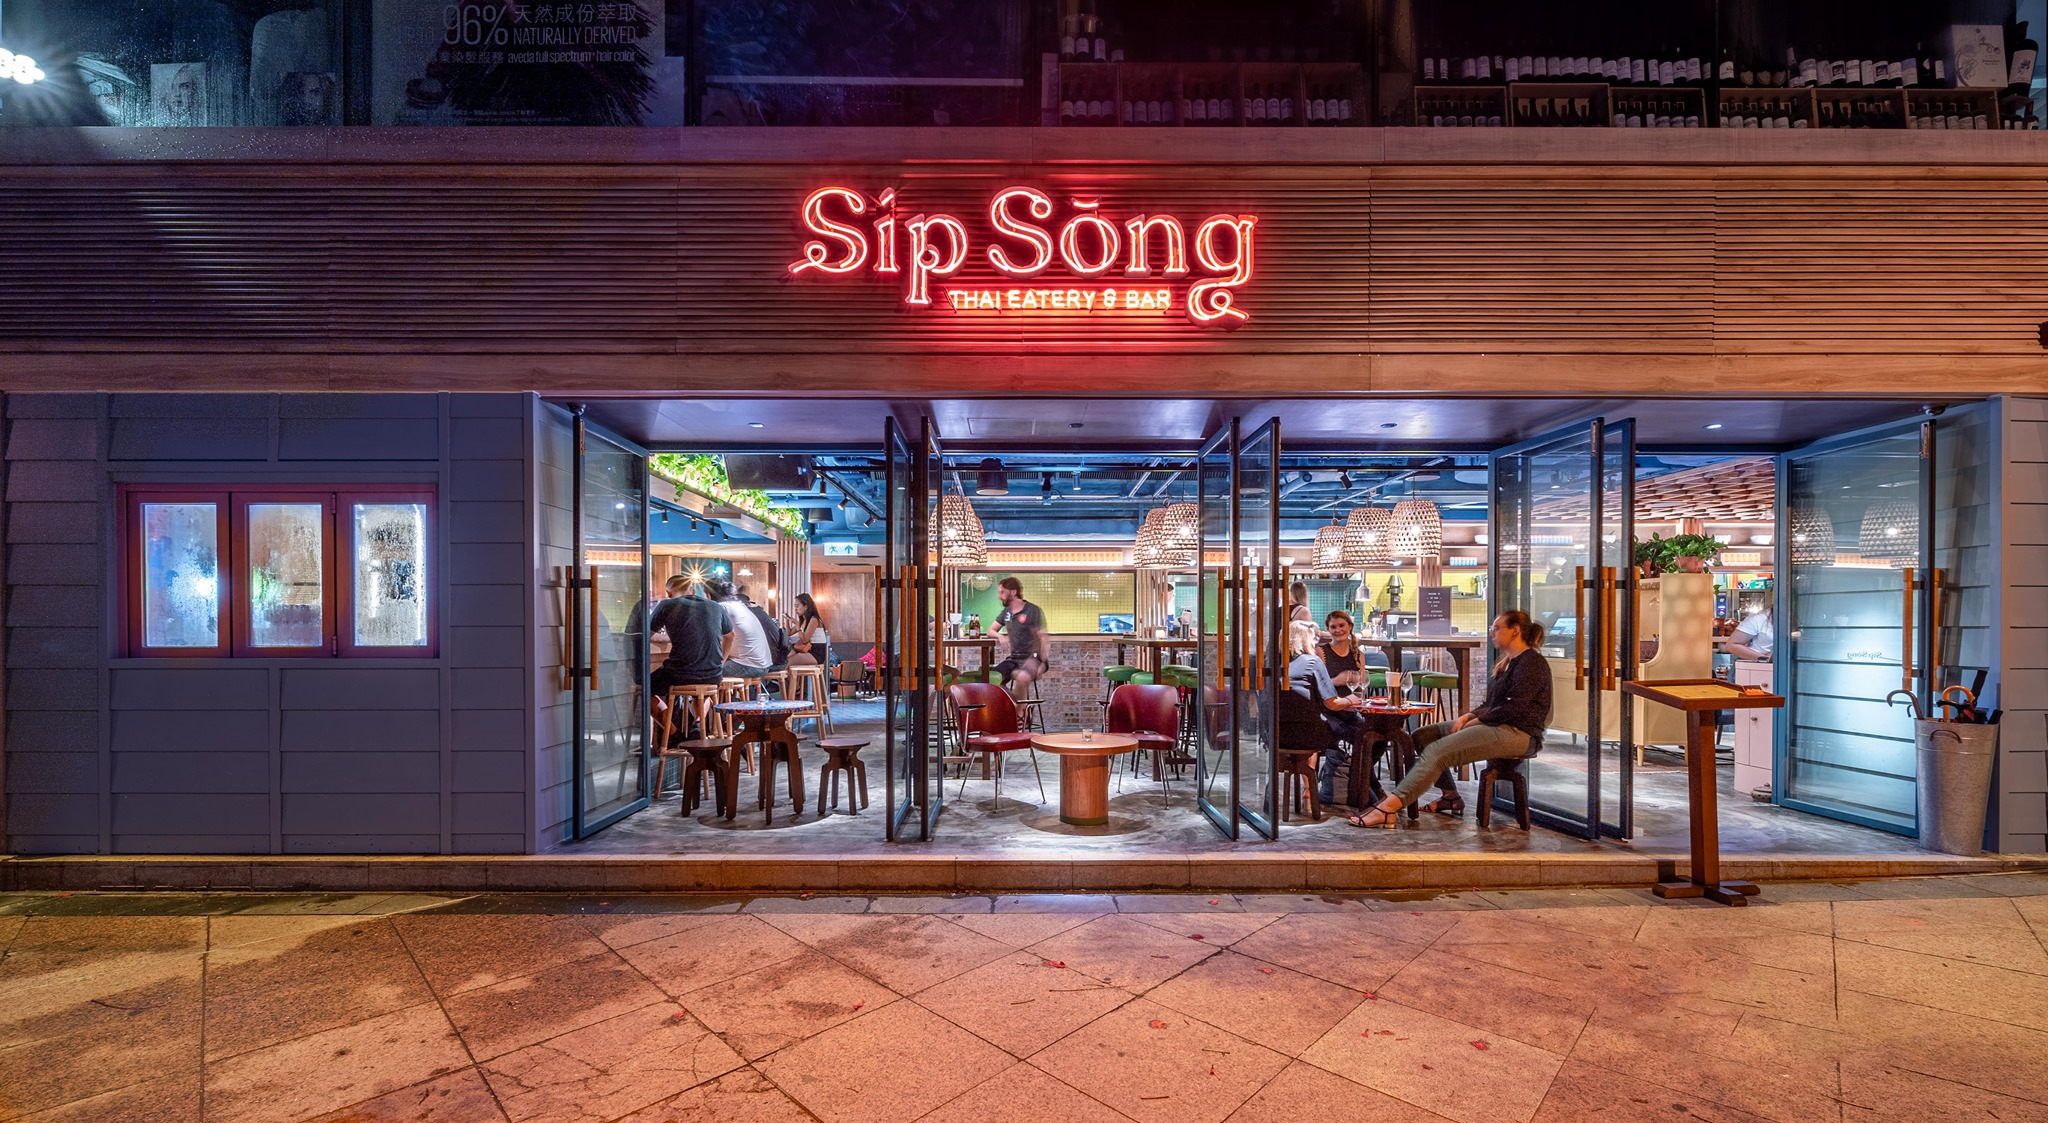 sip song now offers deliveries in Hong Kong